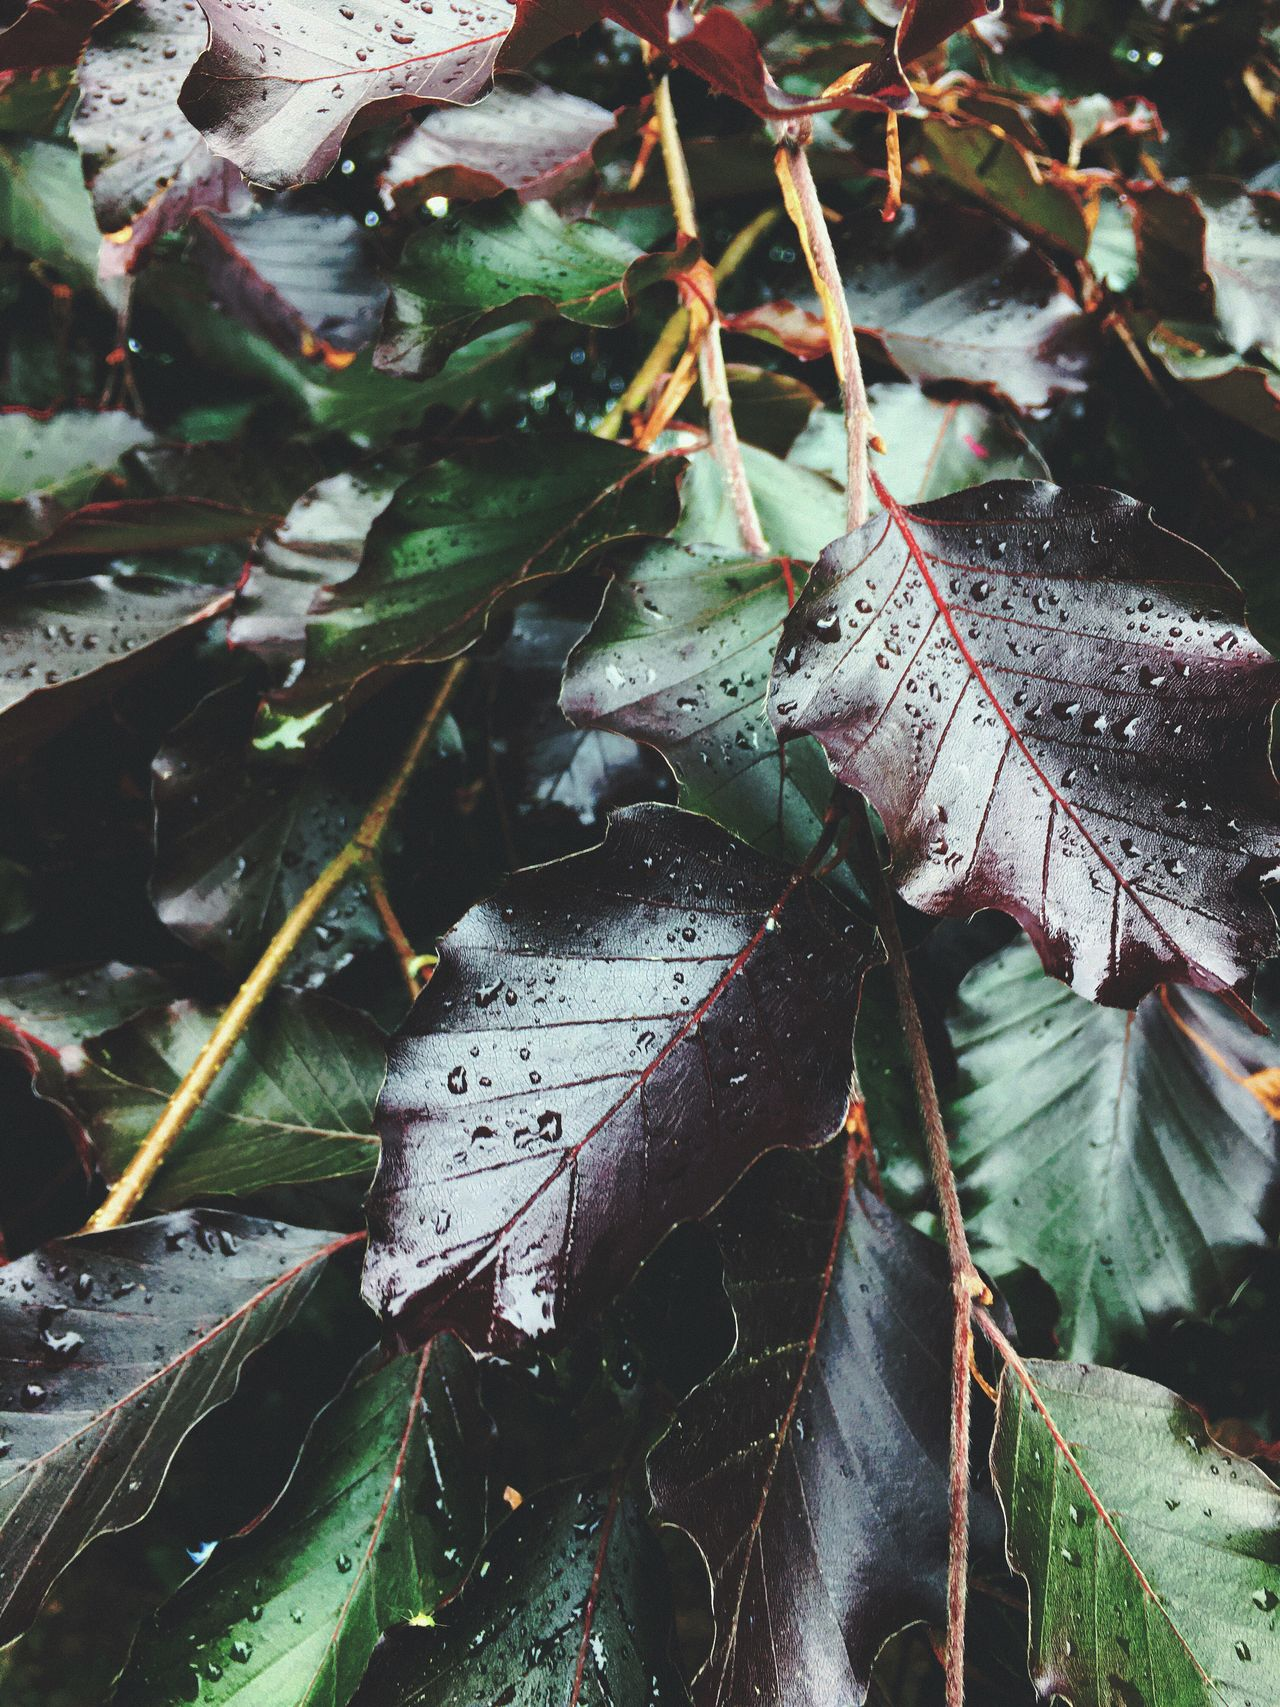 Morning Dew // iPhone6s // Leaf Outdoors Nature Close-up No People Day Plant Green Purple Summer Rain Water Waterdrops Water Droplets This Week On Eyeem EyeEm Nature Lover ShotOnIphone IPhoneography Iphone6s The Great Outdoors - 2017 EyeEm Awards